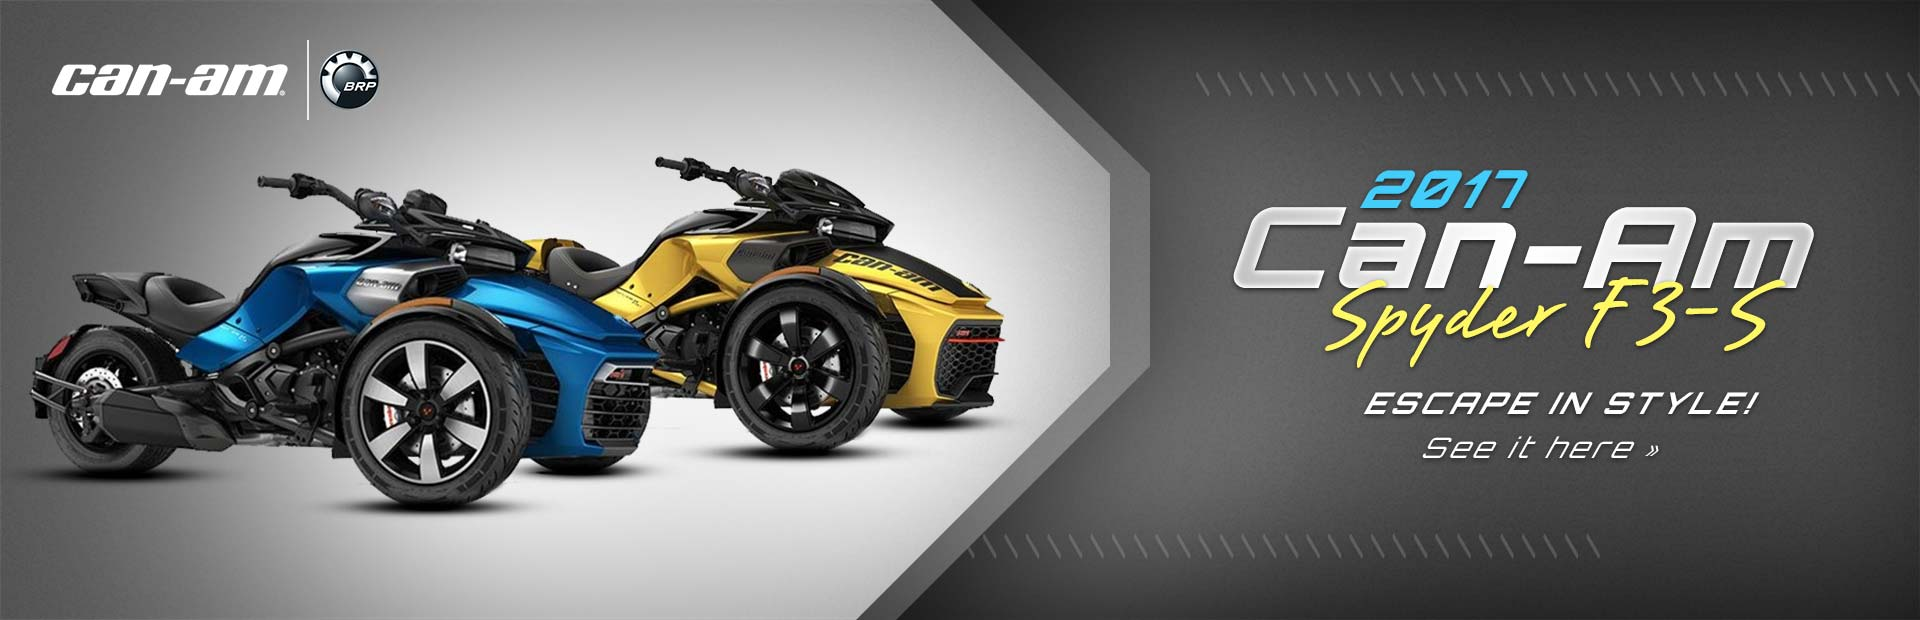 Escape in style with the 2017 Can-Am Spyder F3-S! Click here to view our selection.